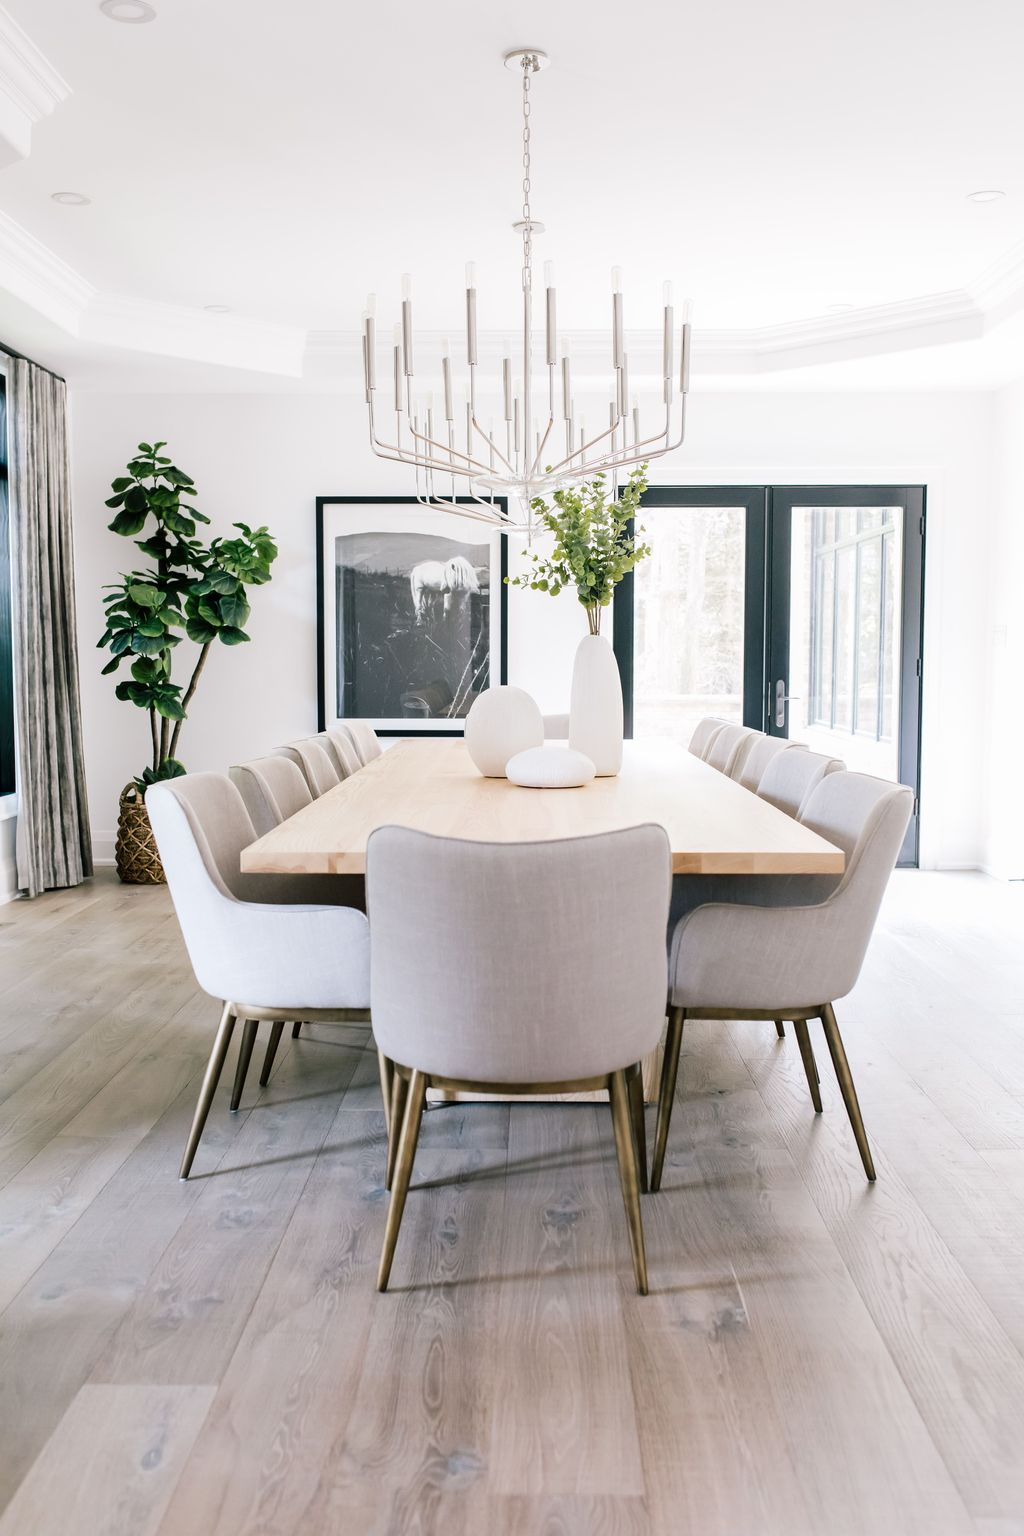 Stunning Dining Room Table Design With Modern Style 21